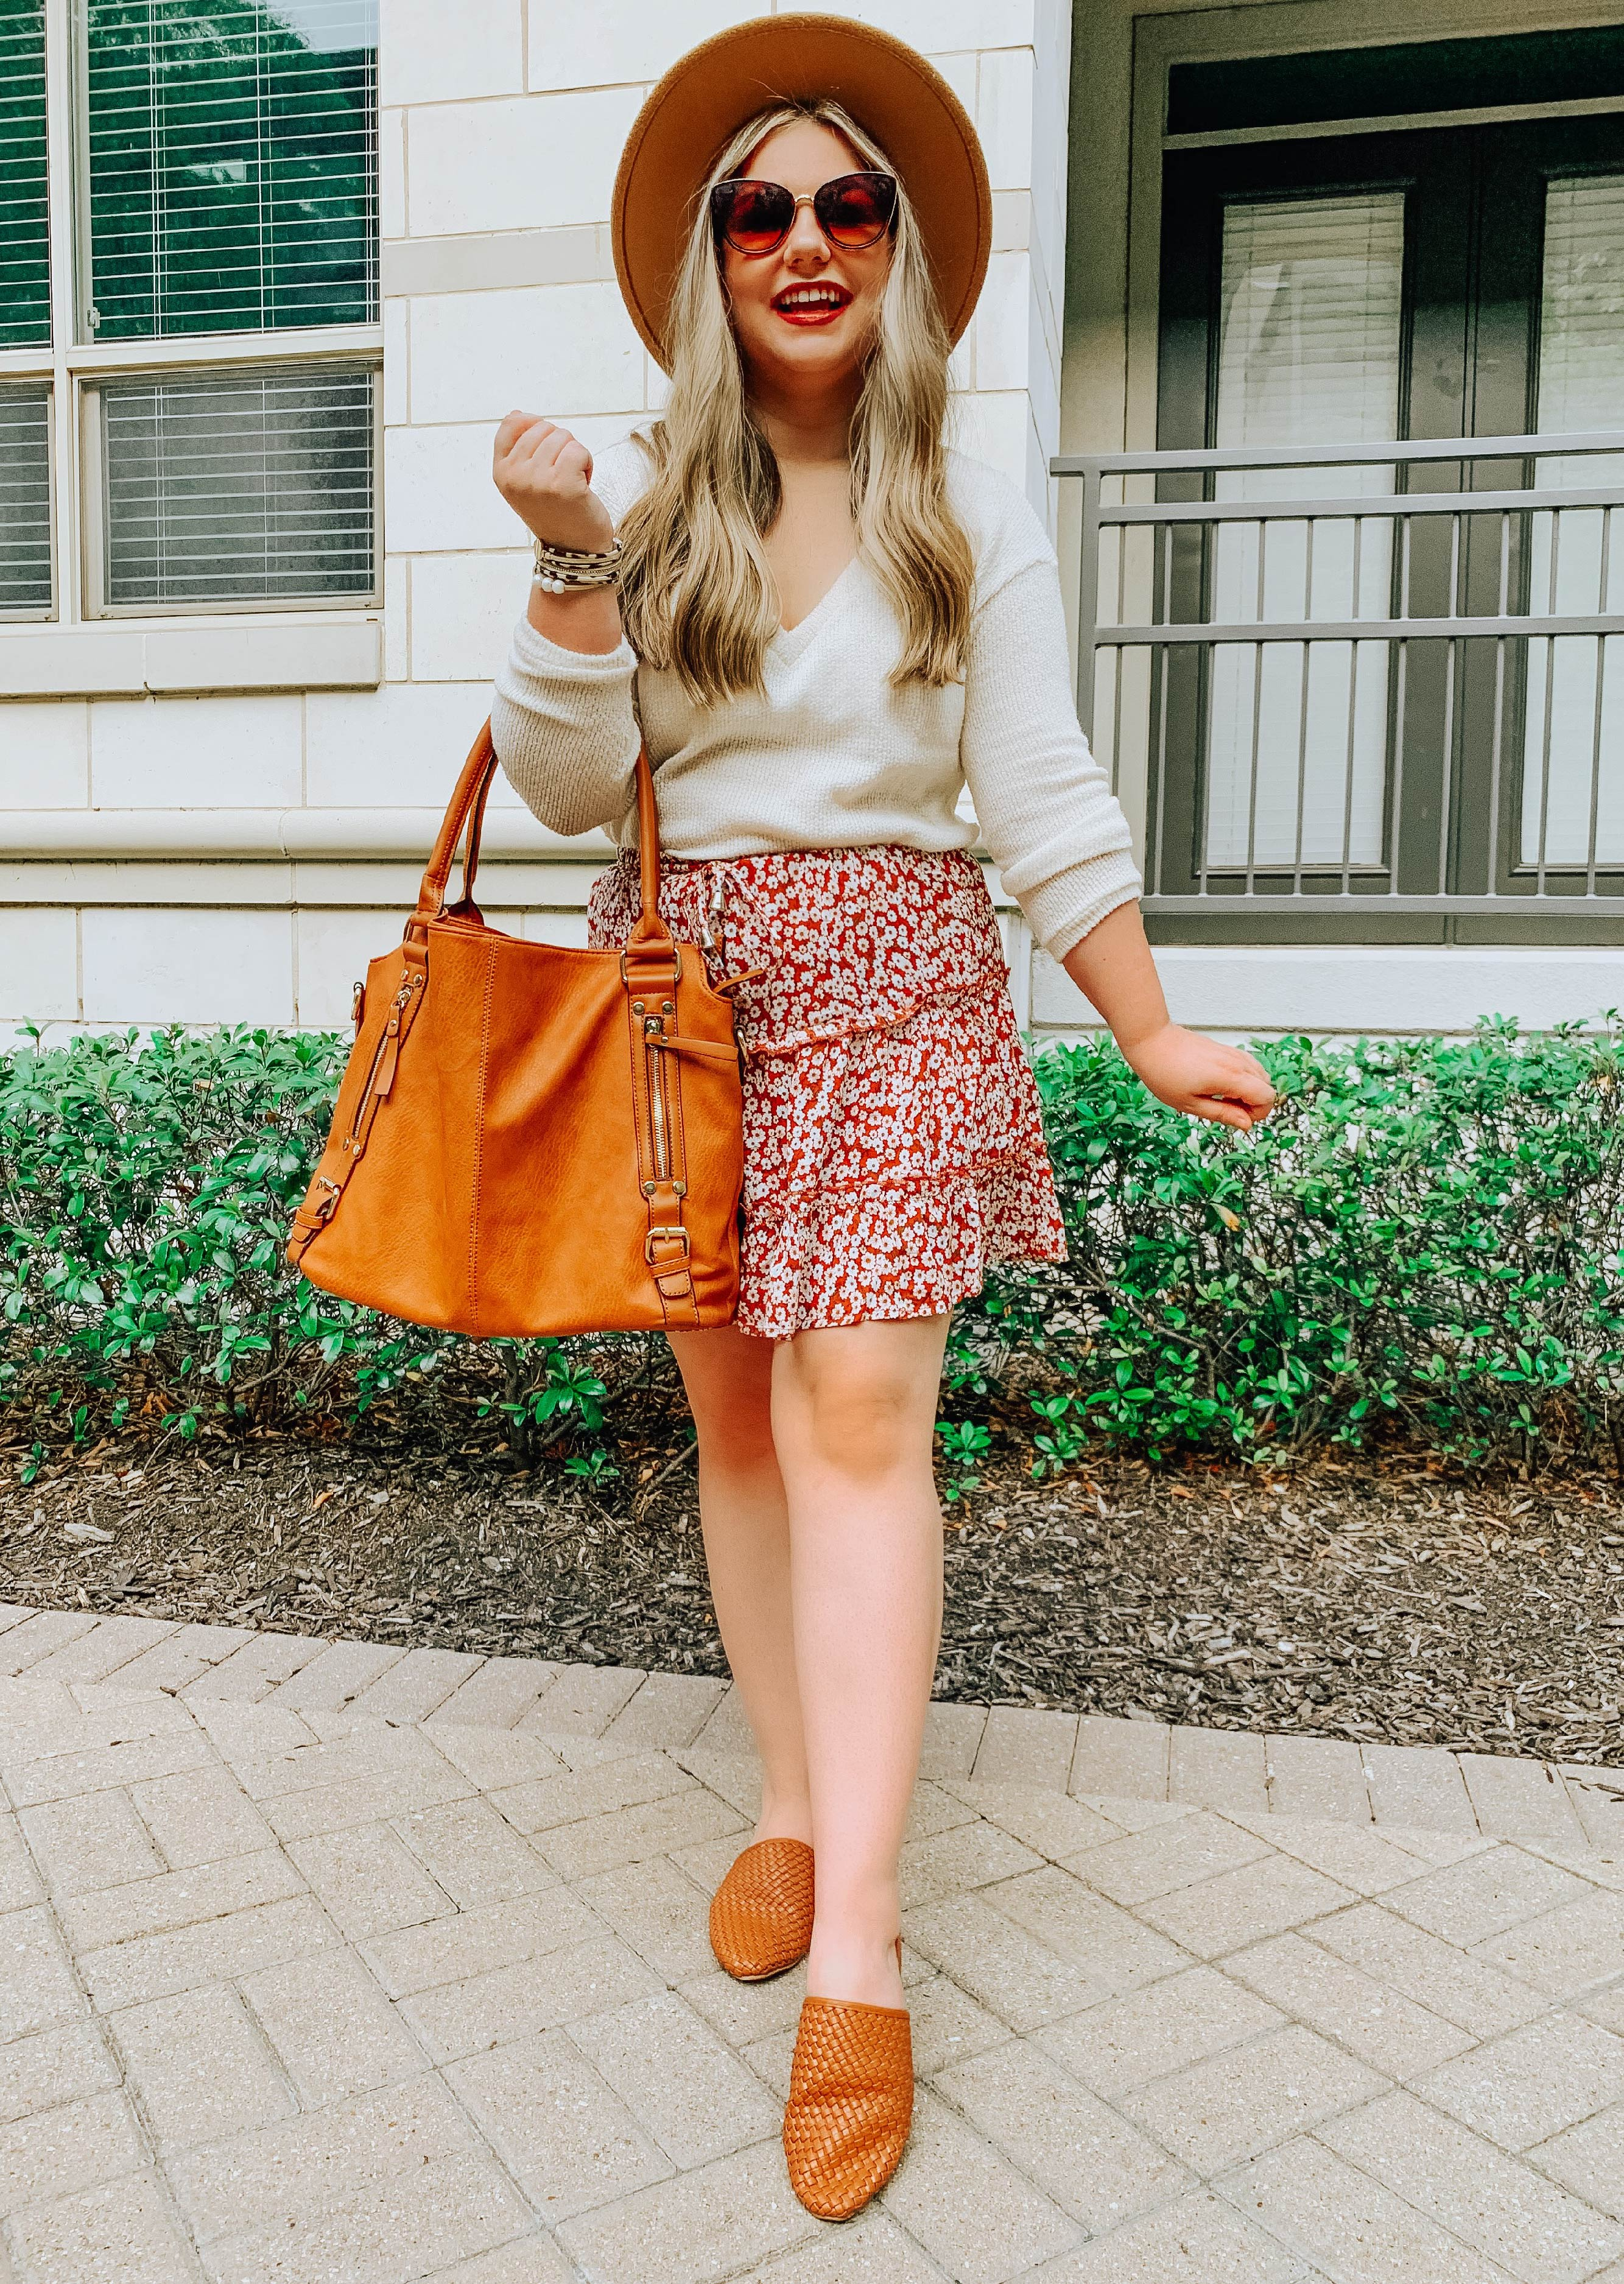 Look 1 - Cream Sweater with floral skirt, brimmed hat, and large purse.